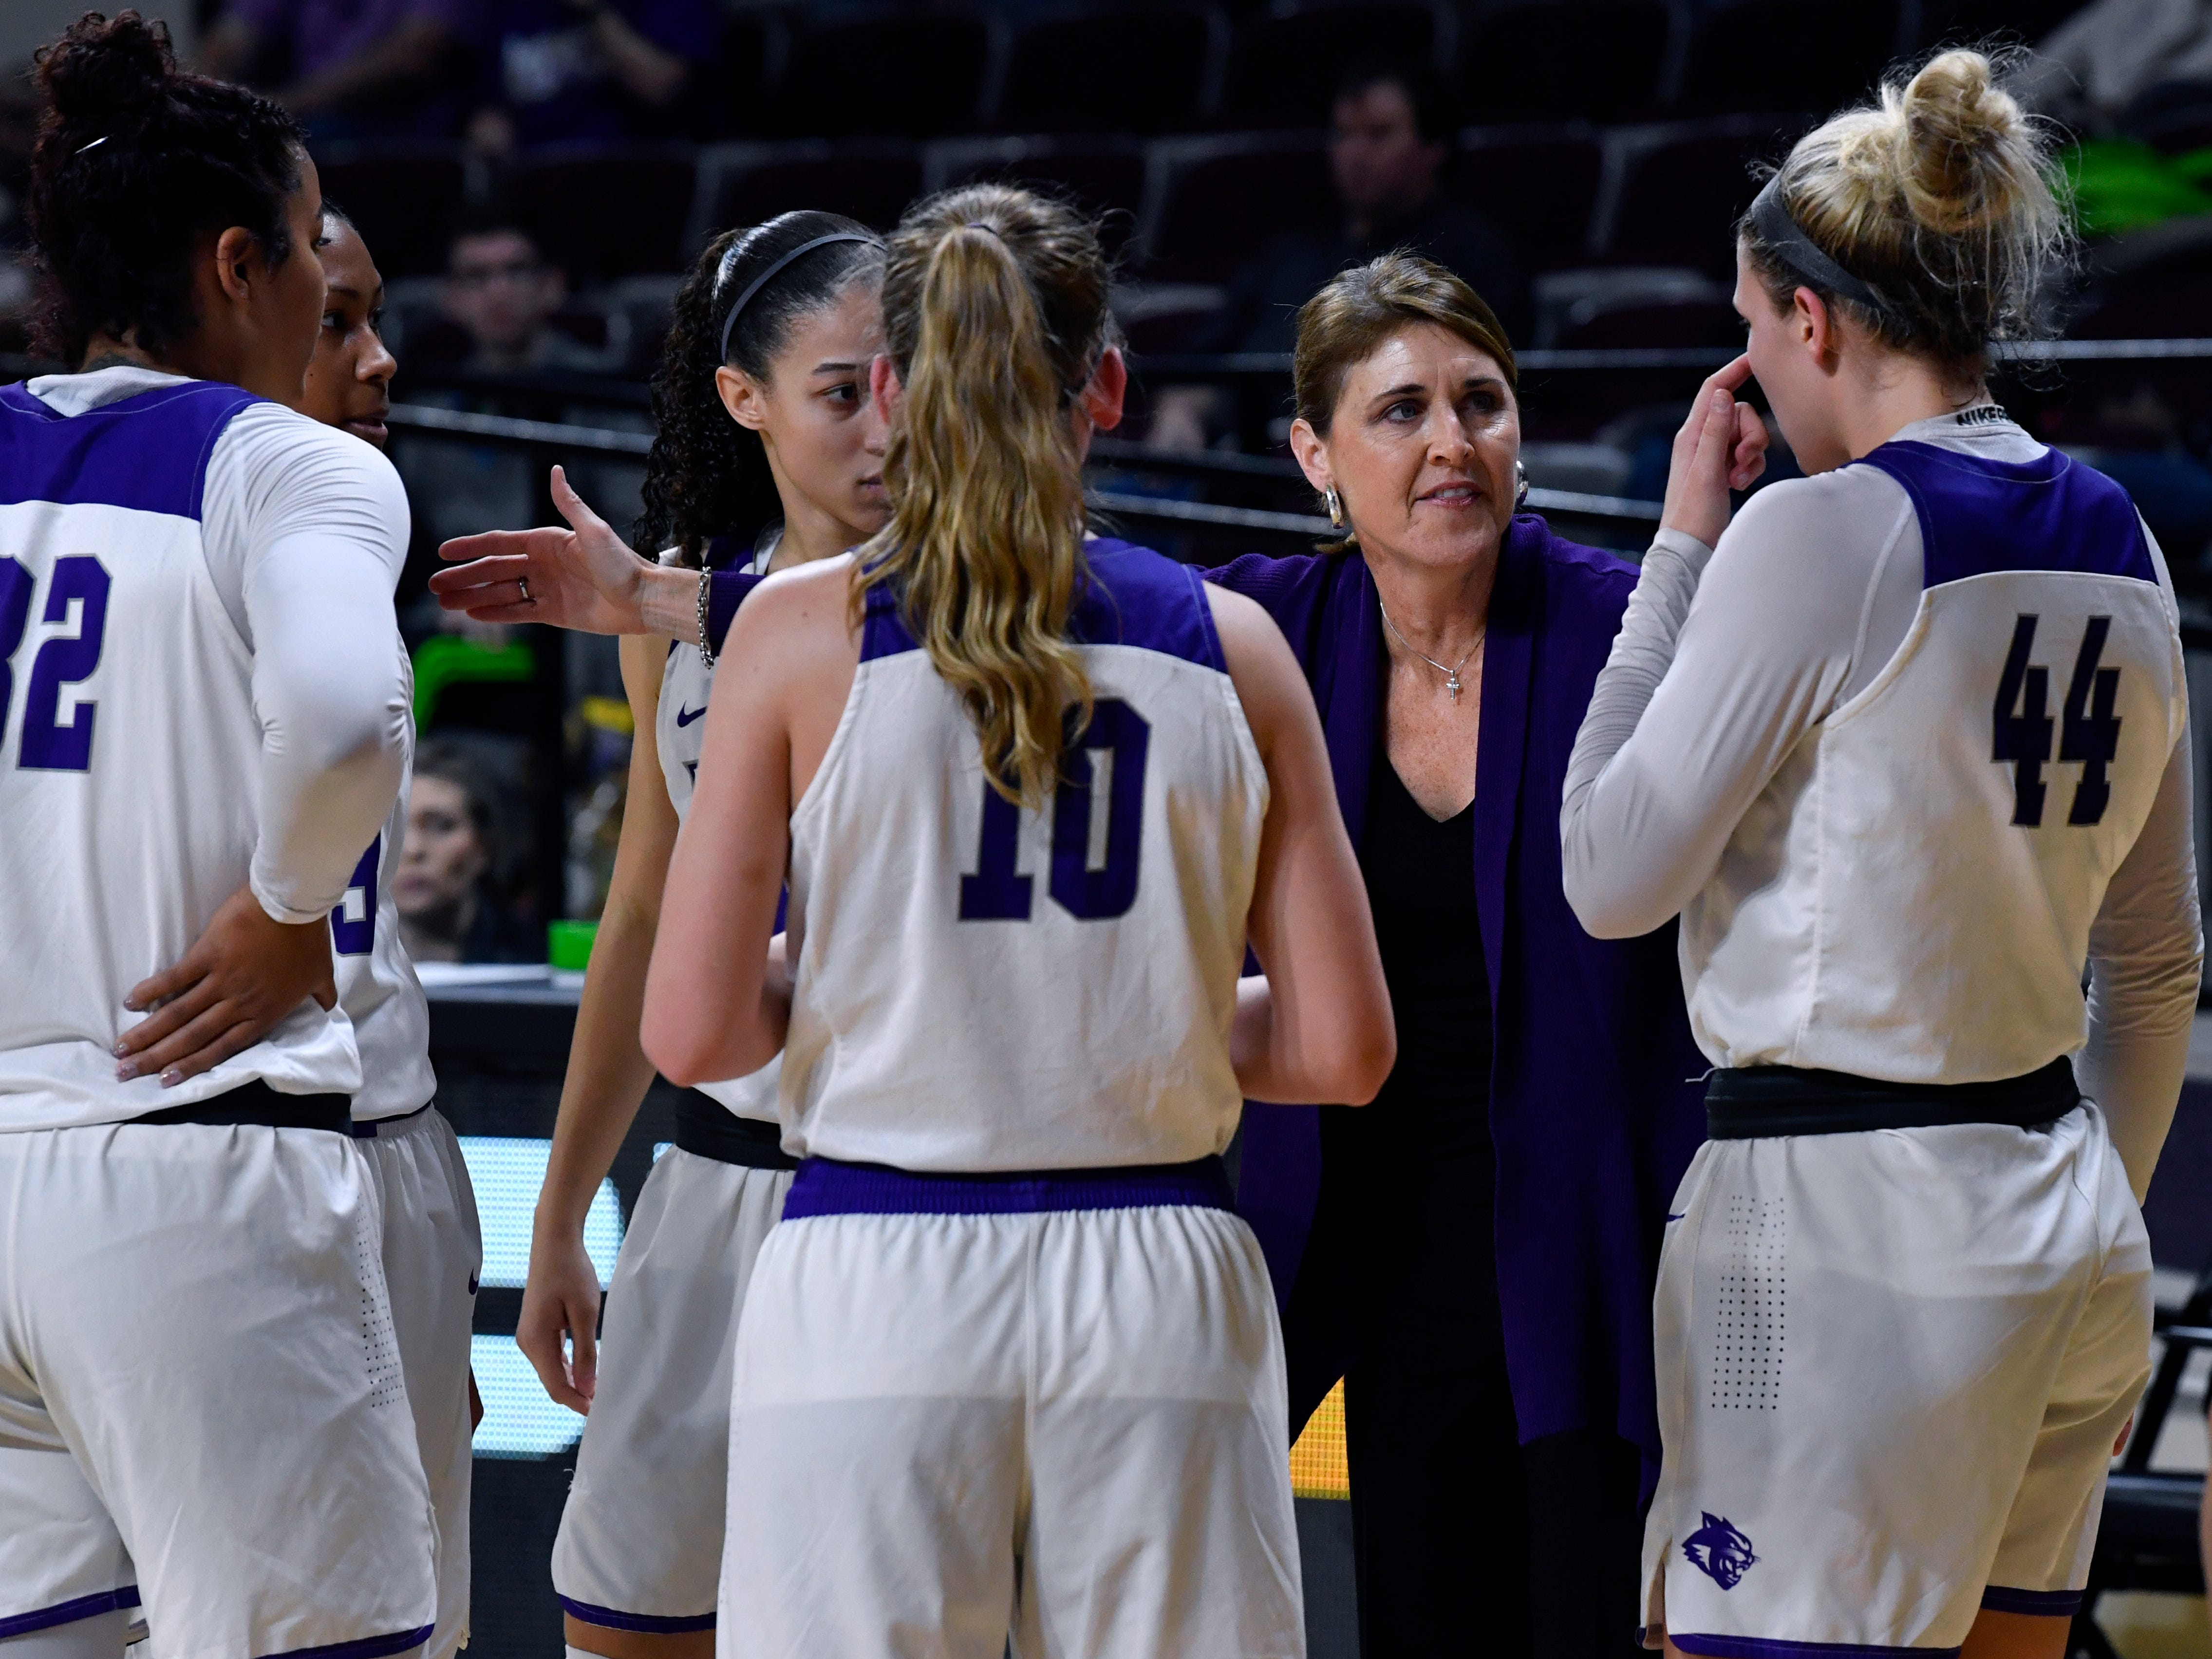 Abilene Christian University Head Coach Julie Goodenough directs her squad during ACU's women's basketball game against Central Arkansas Saturday Jan. 26, 2019. Final score was 77-70, ACU.